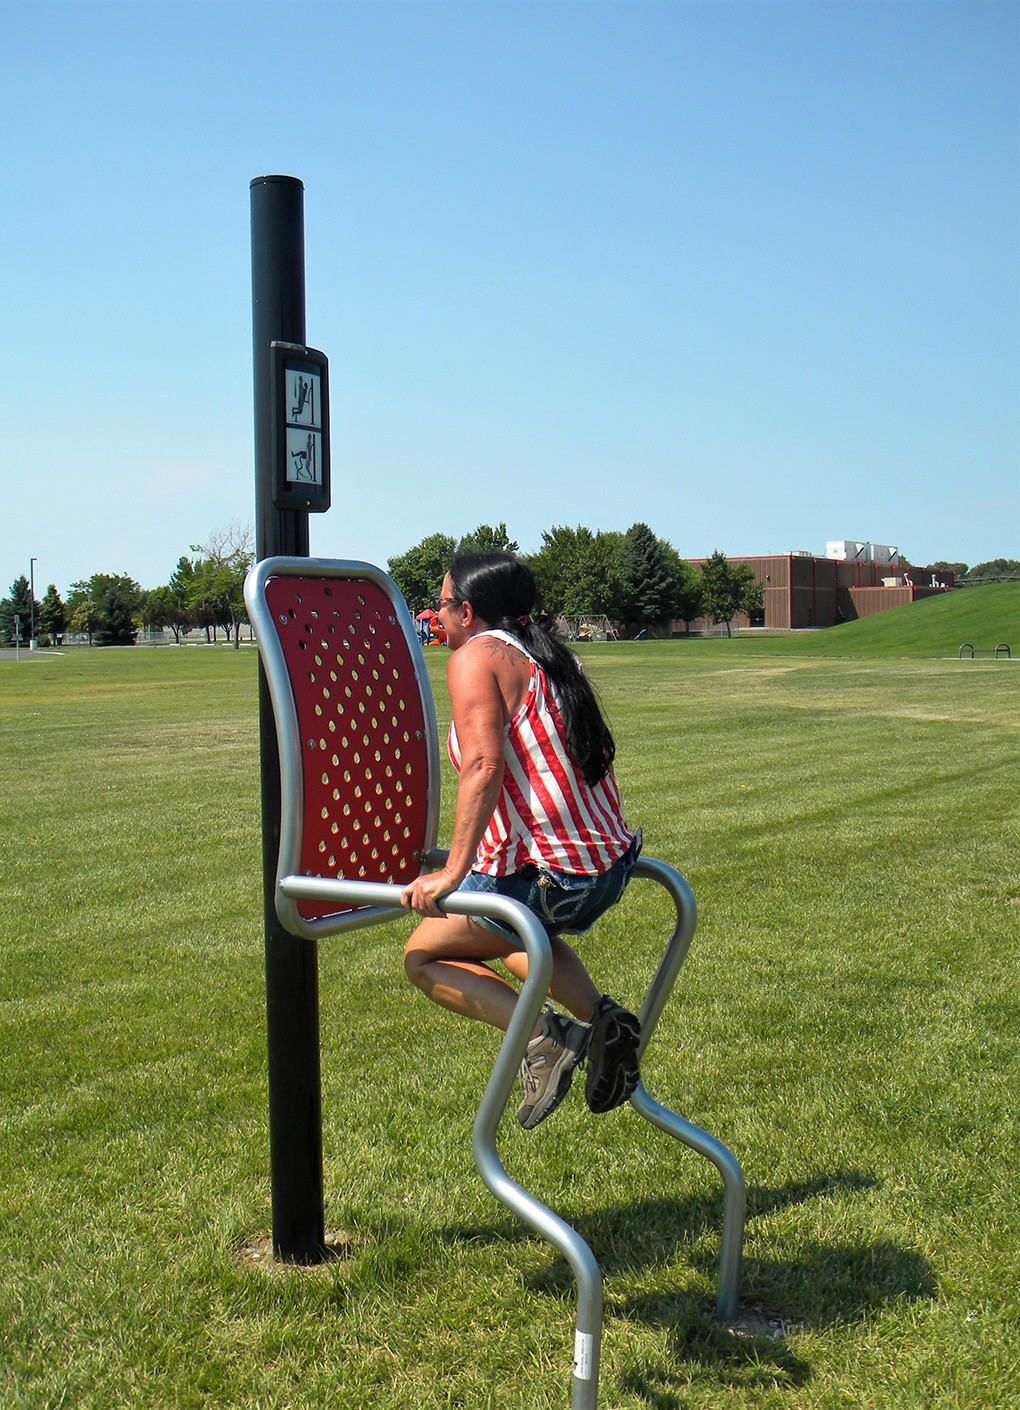 City of Powell employee Teresa Cheney shows good technique on the dip and leg raise station at Homesteader Park. The equipment is available free to the public during normal park hours, 7 a.m. to 11 p.m.